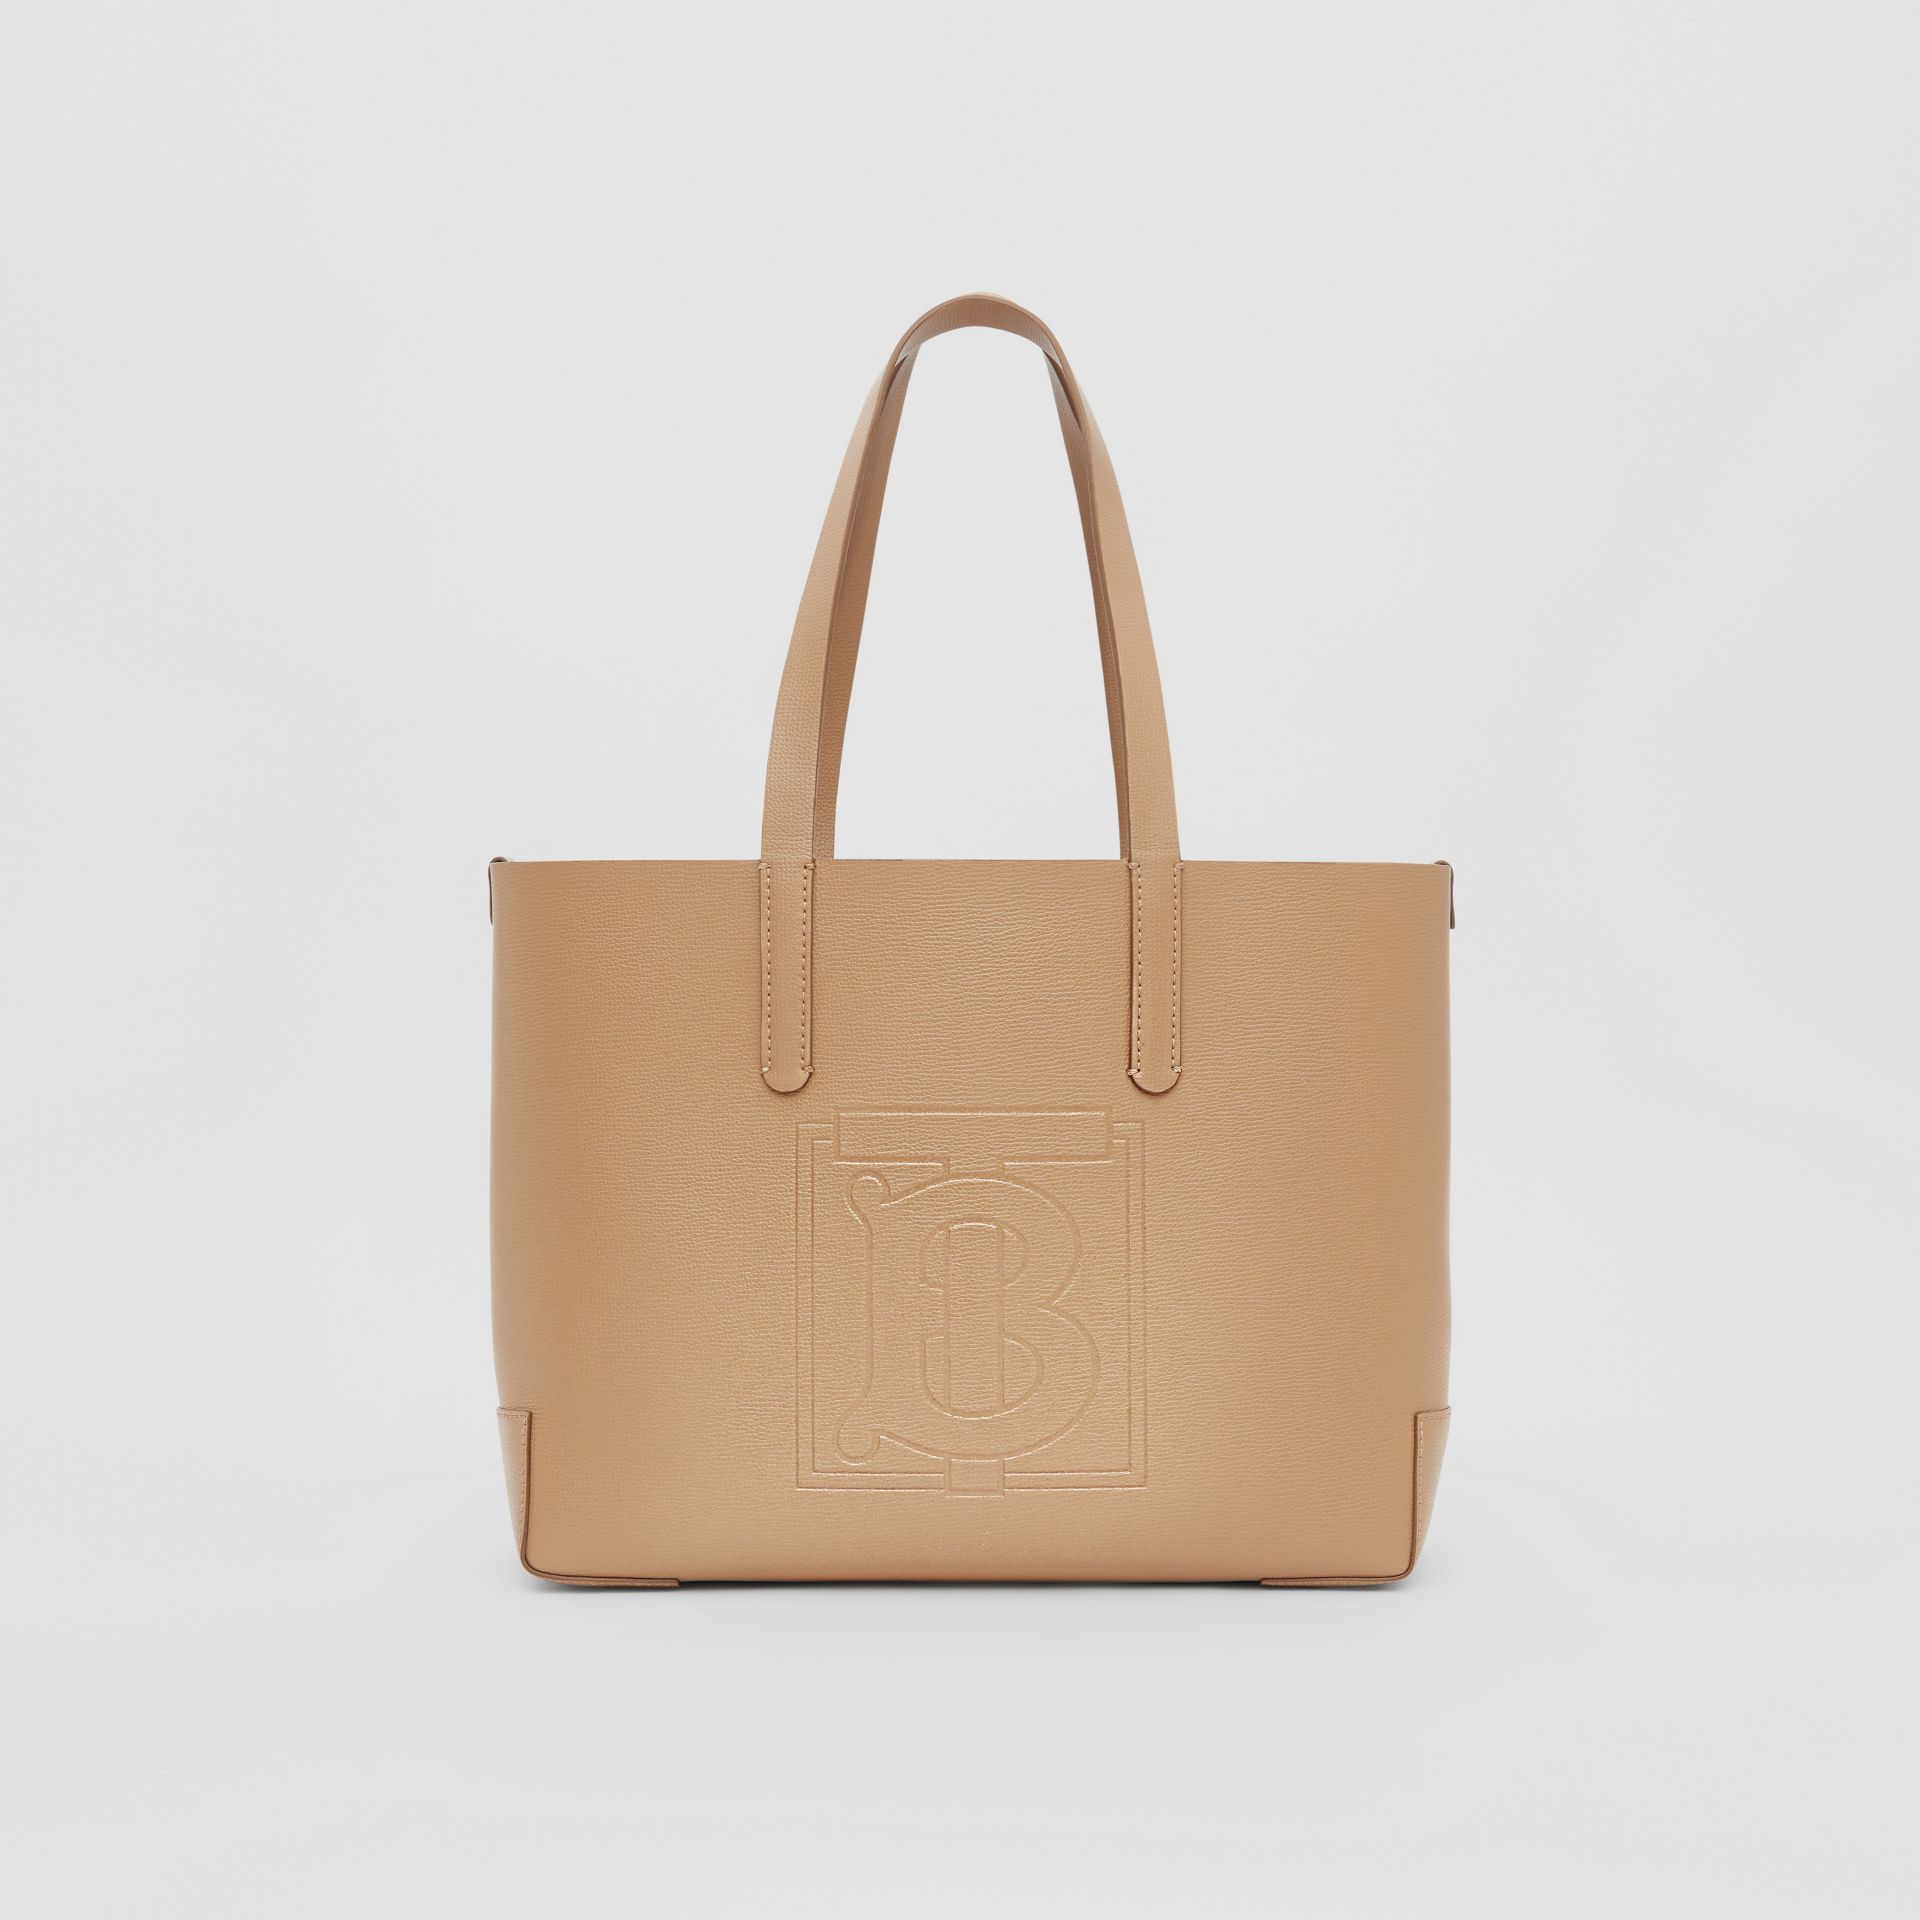 Embossed Monogram Motif Leather Tote in Camel - Women | Burberry United Kingdom - gallery image 0